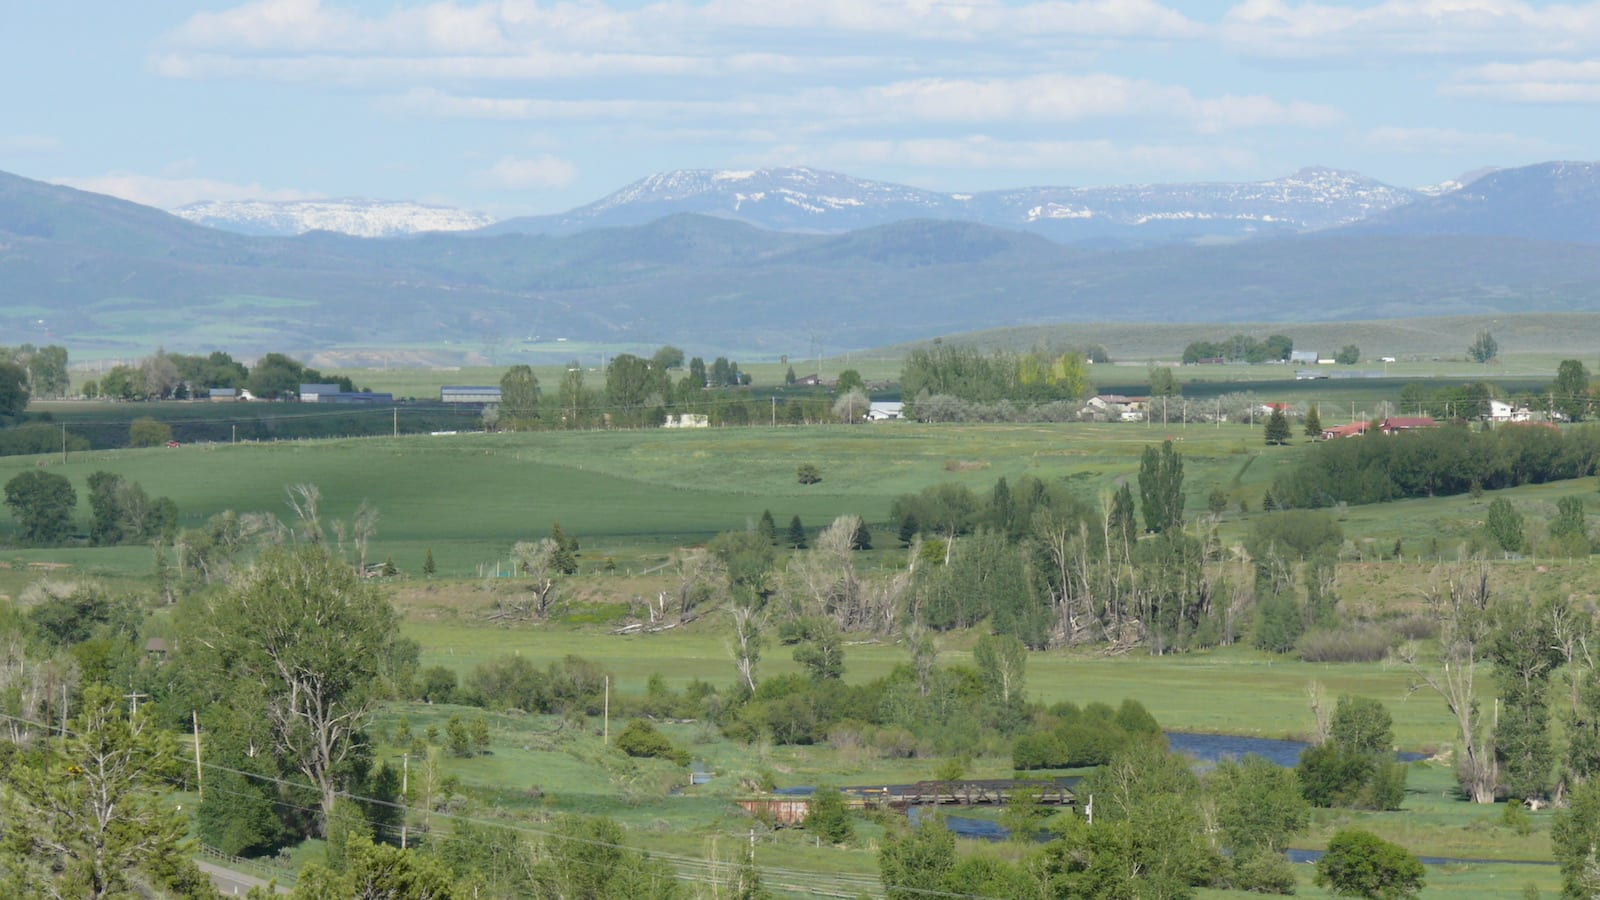 White River Valley Meeker Colorado Flat Top Mountains